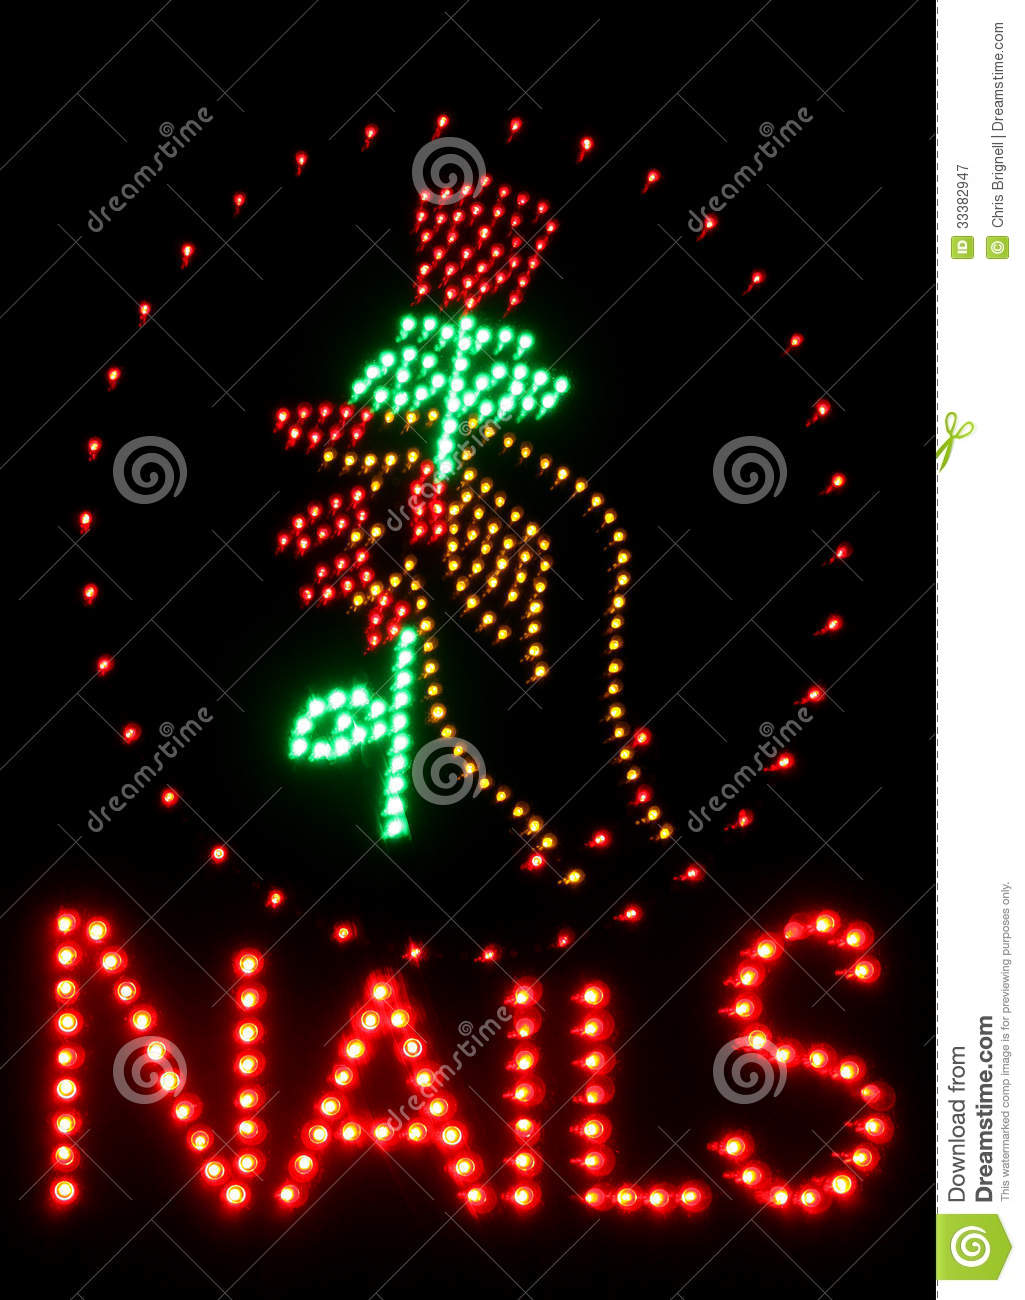 Nail salon neon sign stock image. Image of glowing, neon - 33382947